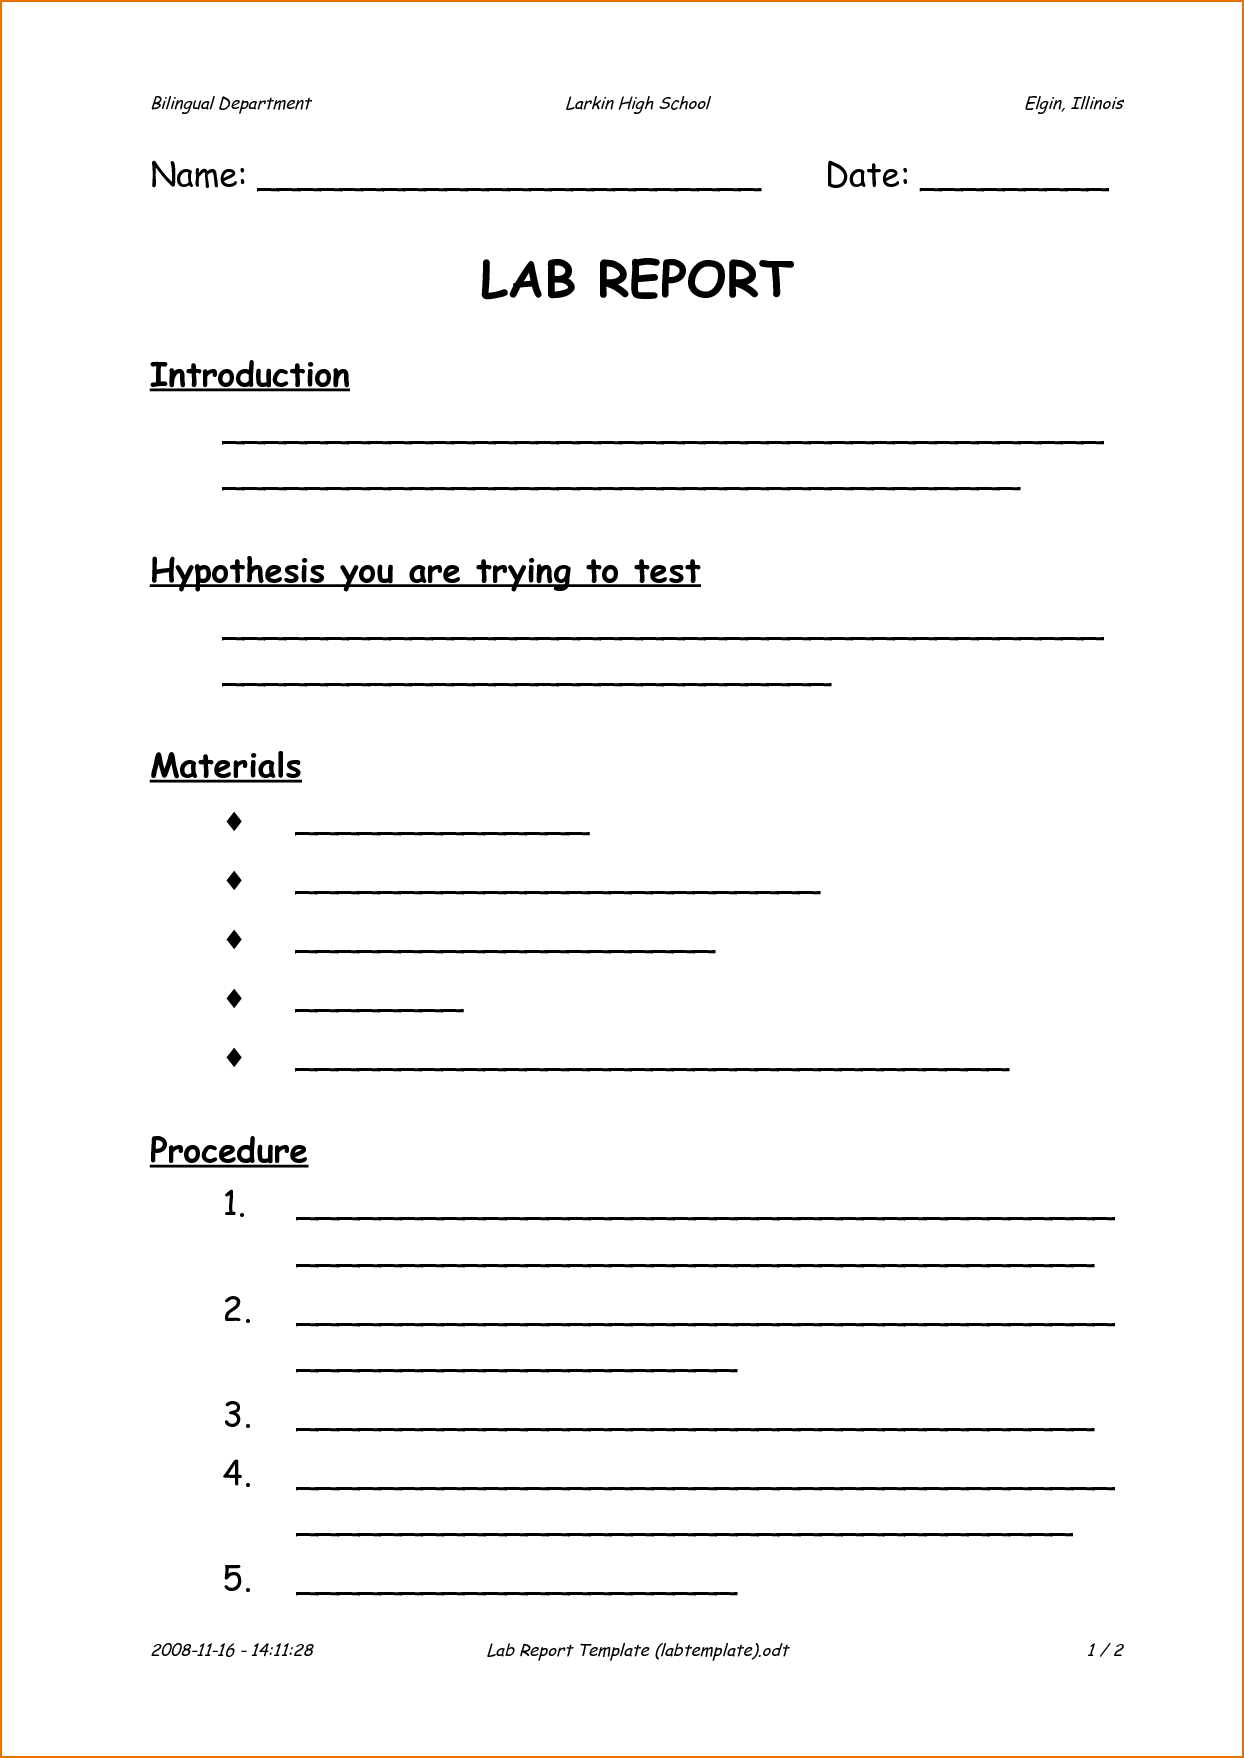 Internal Audit Report Template iso 9001 and 6 formal Lab Report Template Printable Receipt